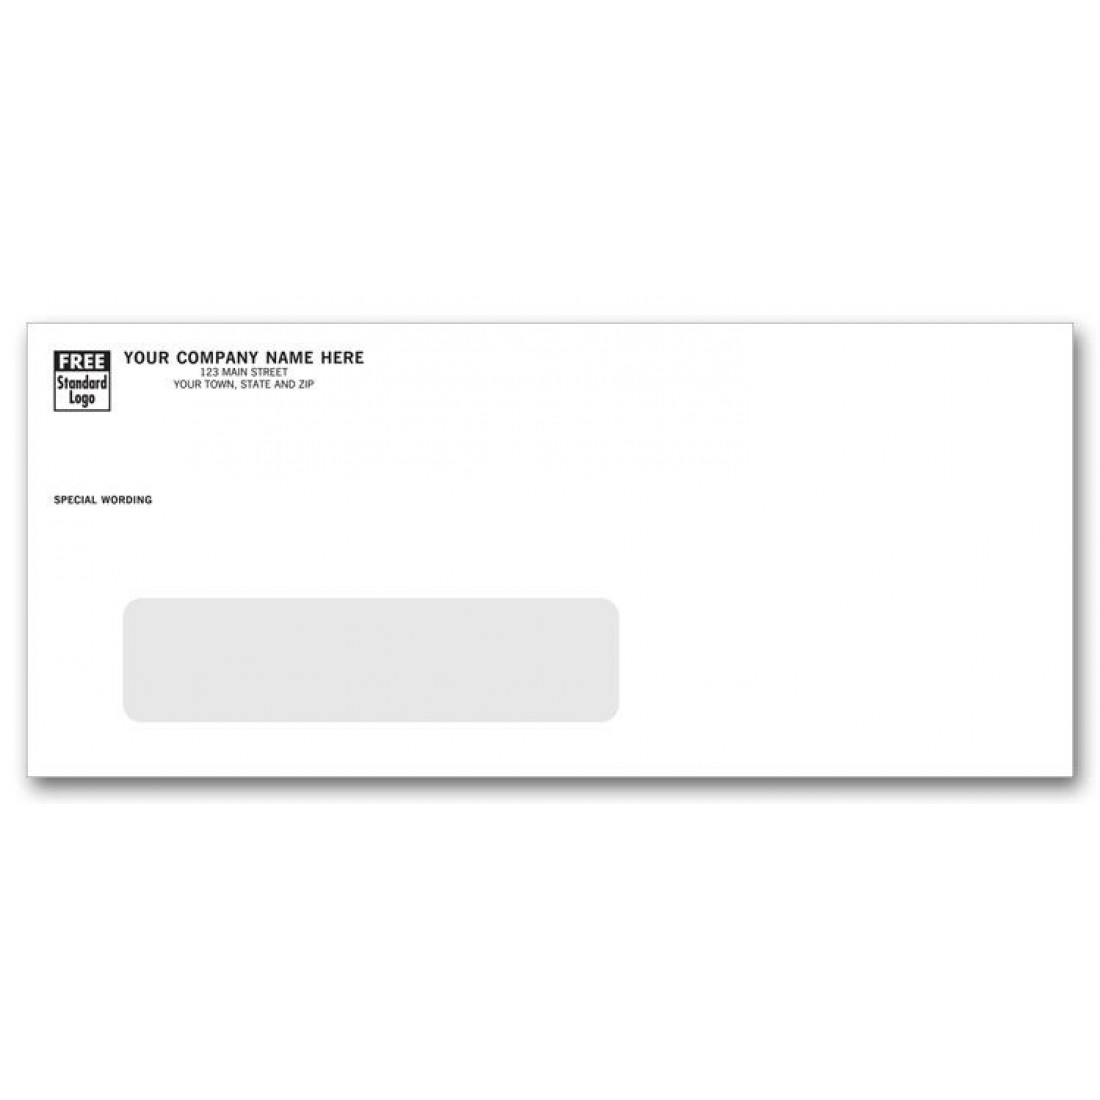 10 large single window envelopes free shipping for Window envelopes